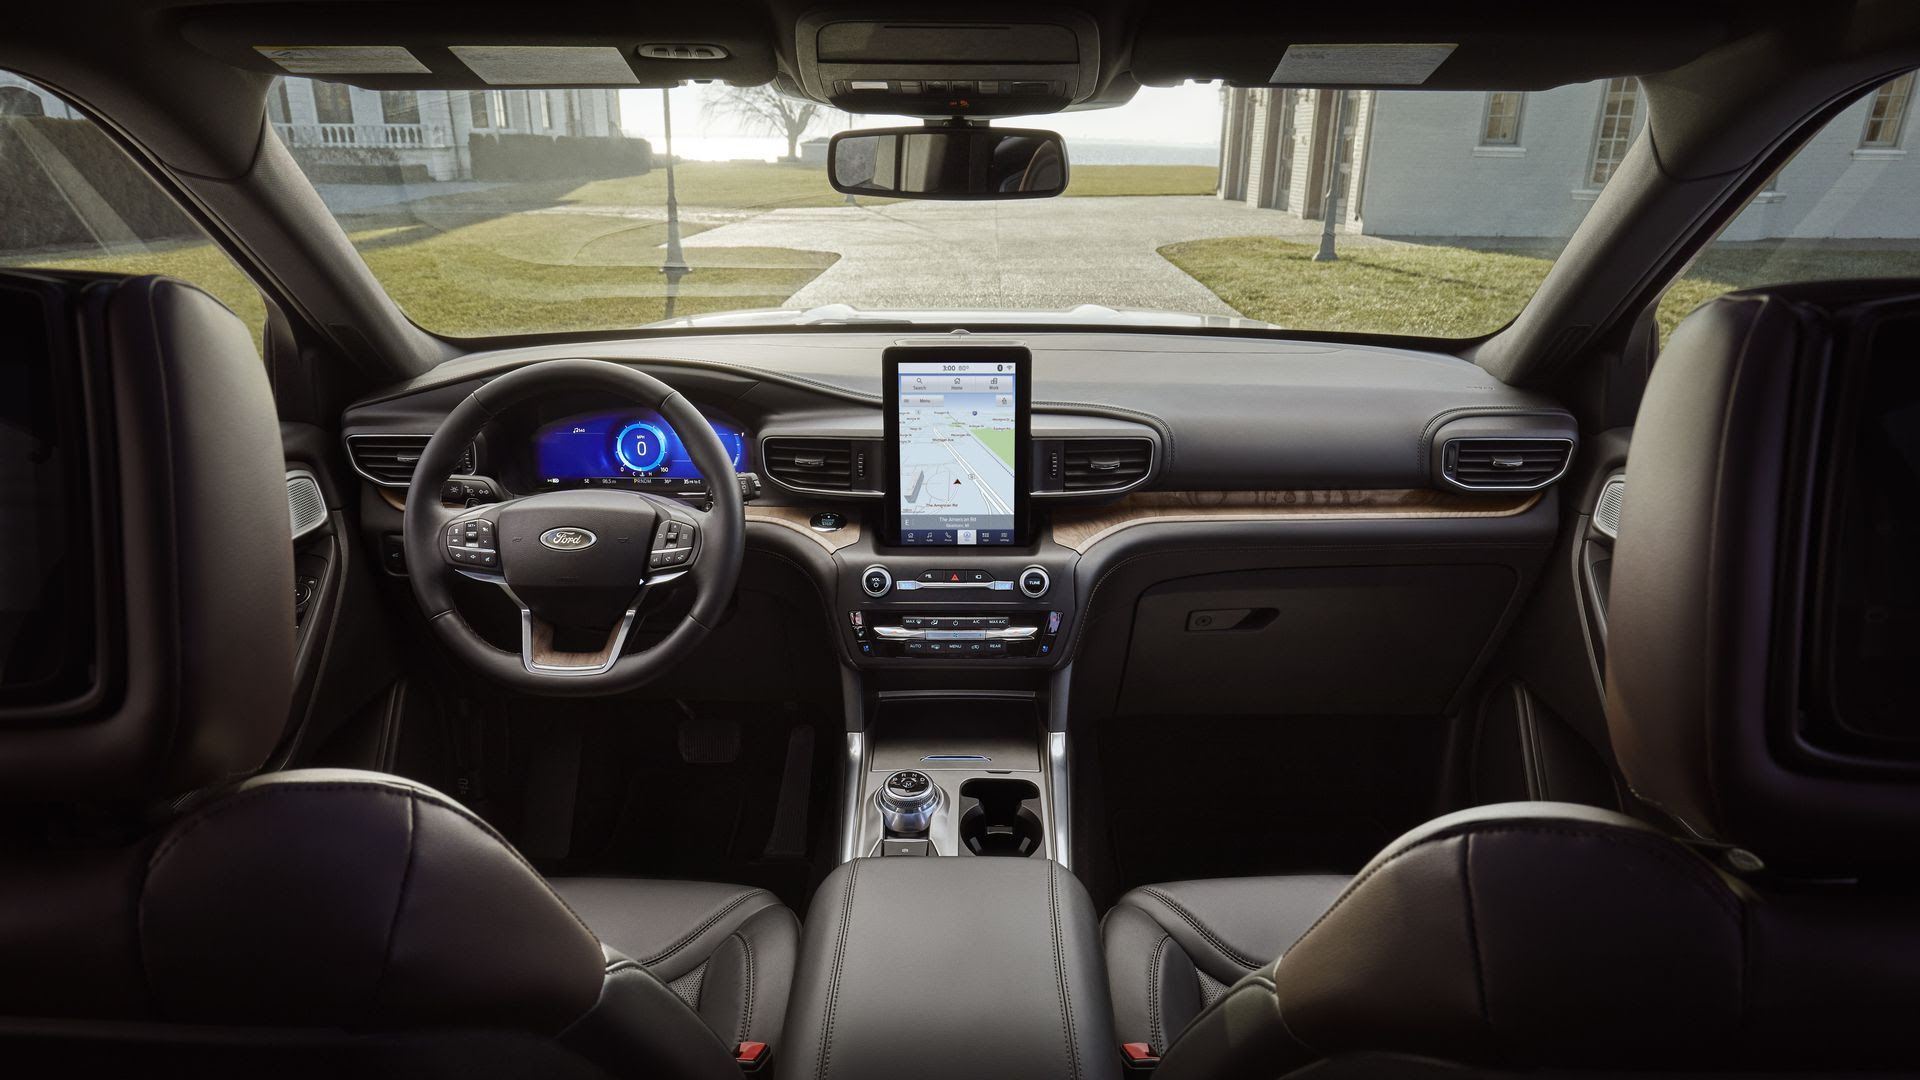 A photo of the inside of the 2020 Ford Explorer, which has a touch screen pad.